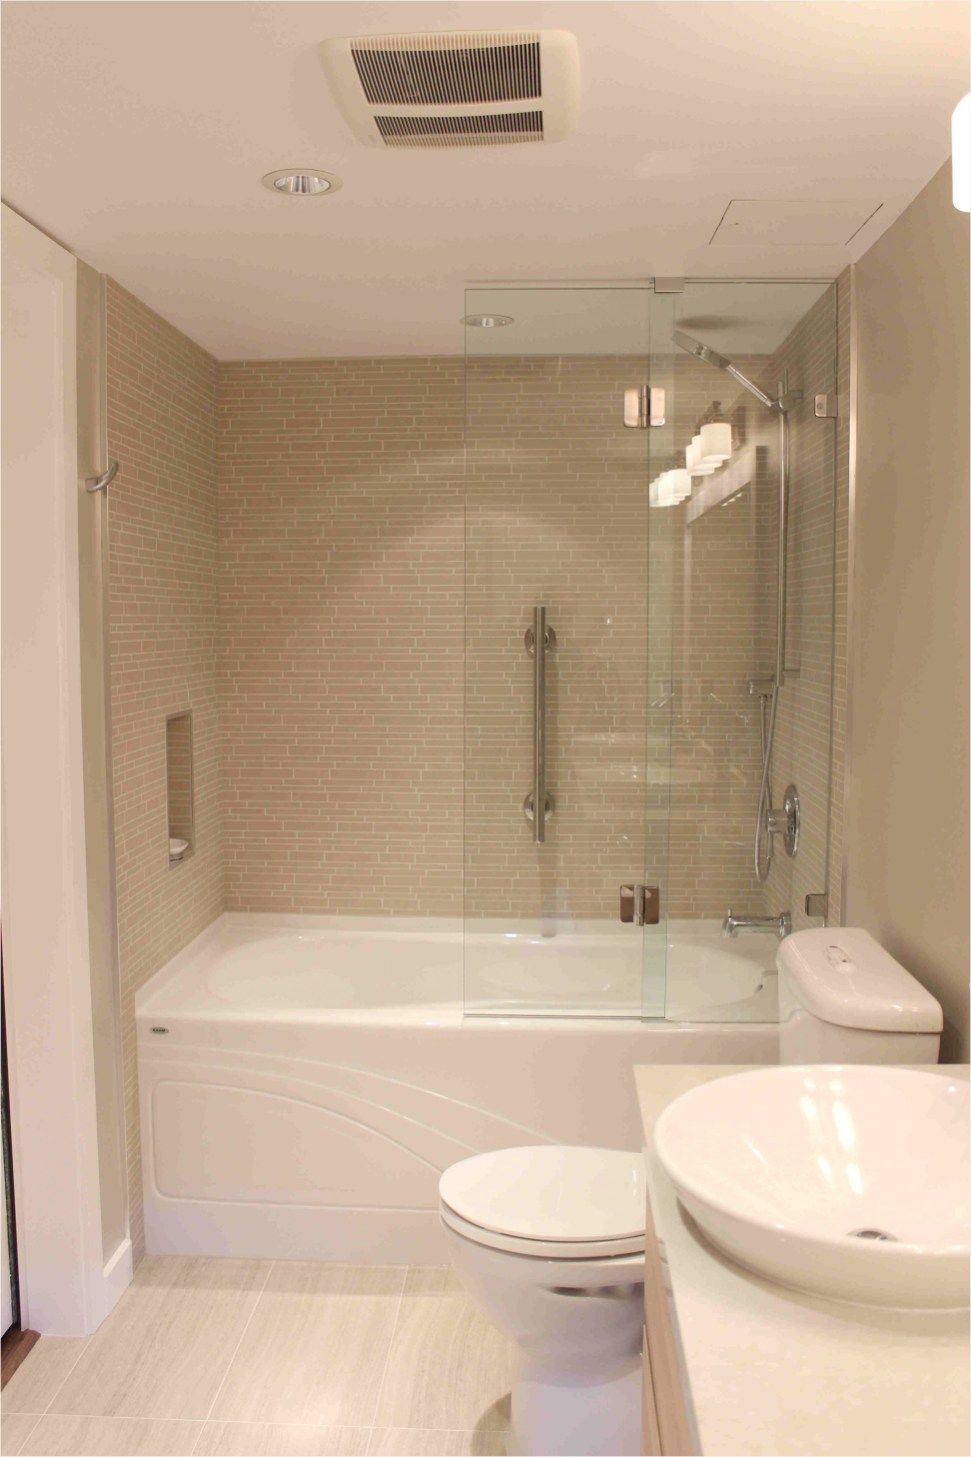 Full Bathroom Renovation 41 Awesome Small Full Bathroom Remodel Ideas Fullbathroom Renovation T Full Bathroom Remodel Small Full Bathroom Bathroom Cost